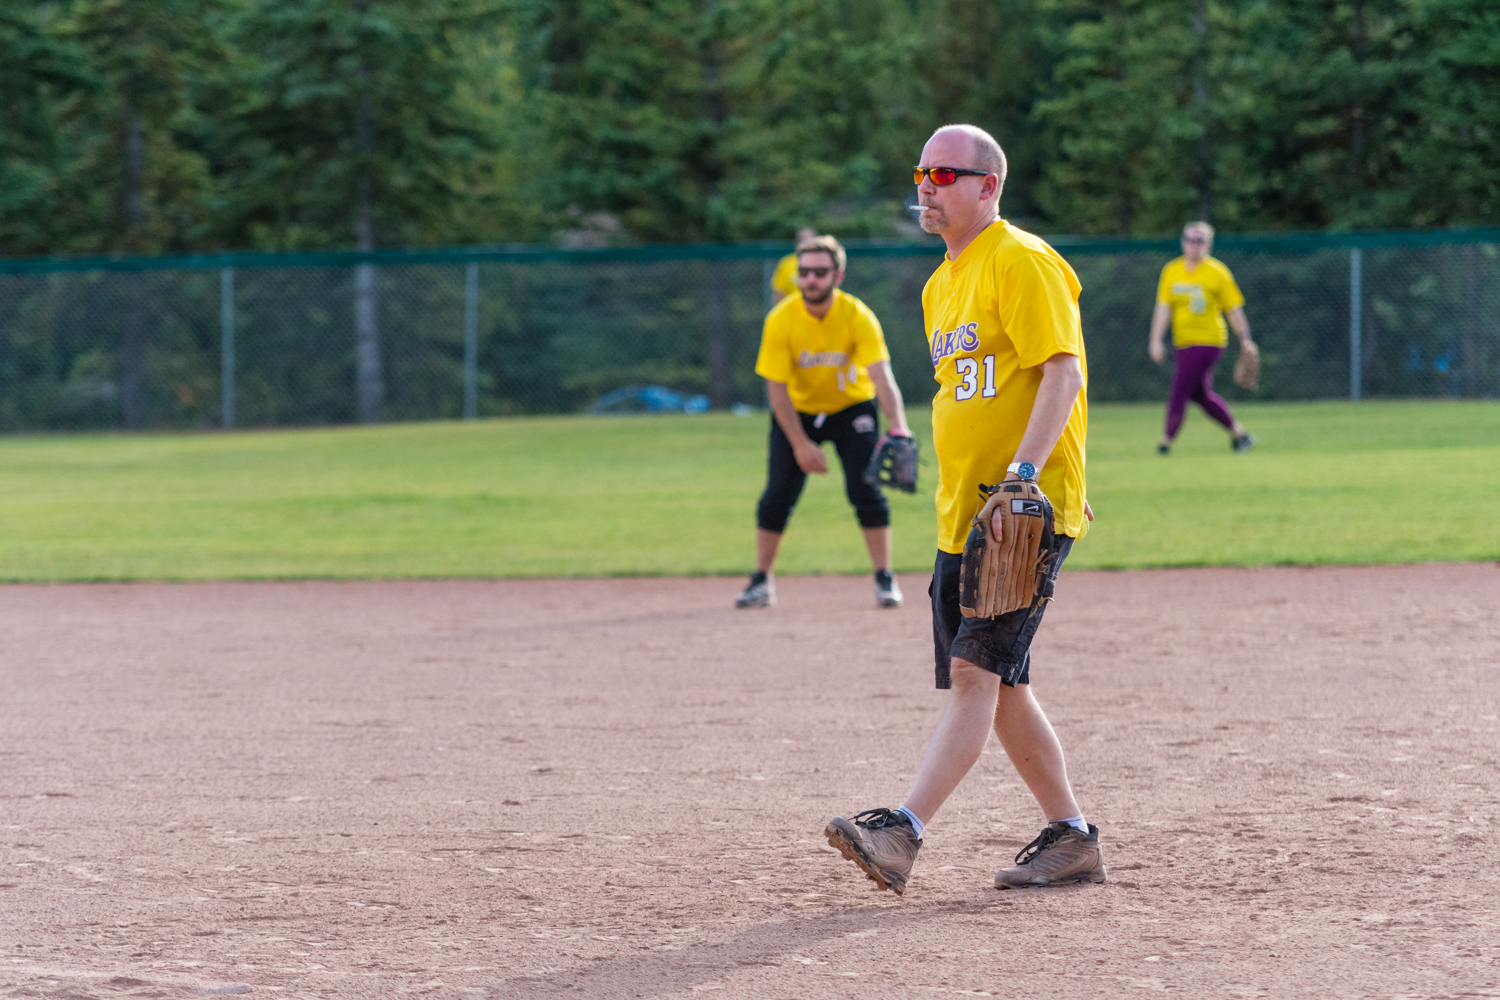 2017 08 22 Softball Playoffs 1-58.jpg